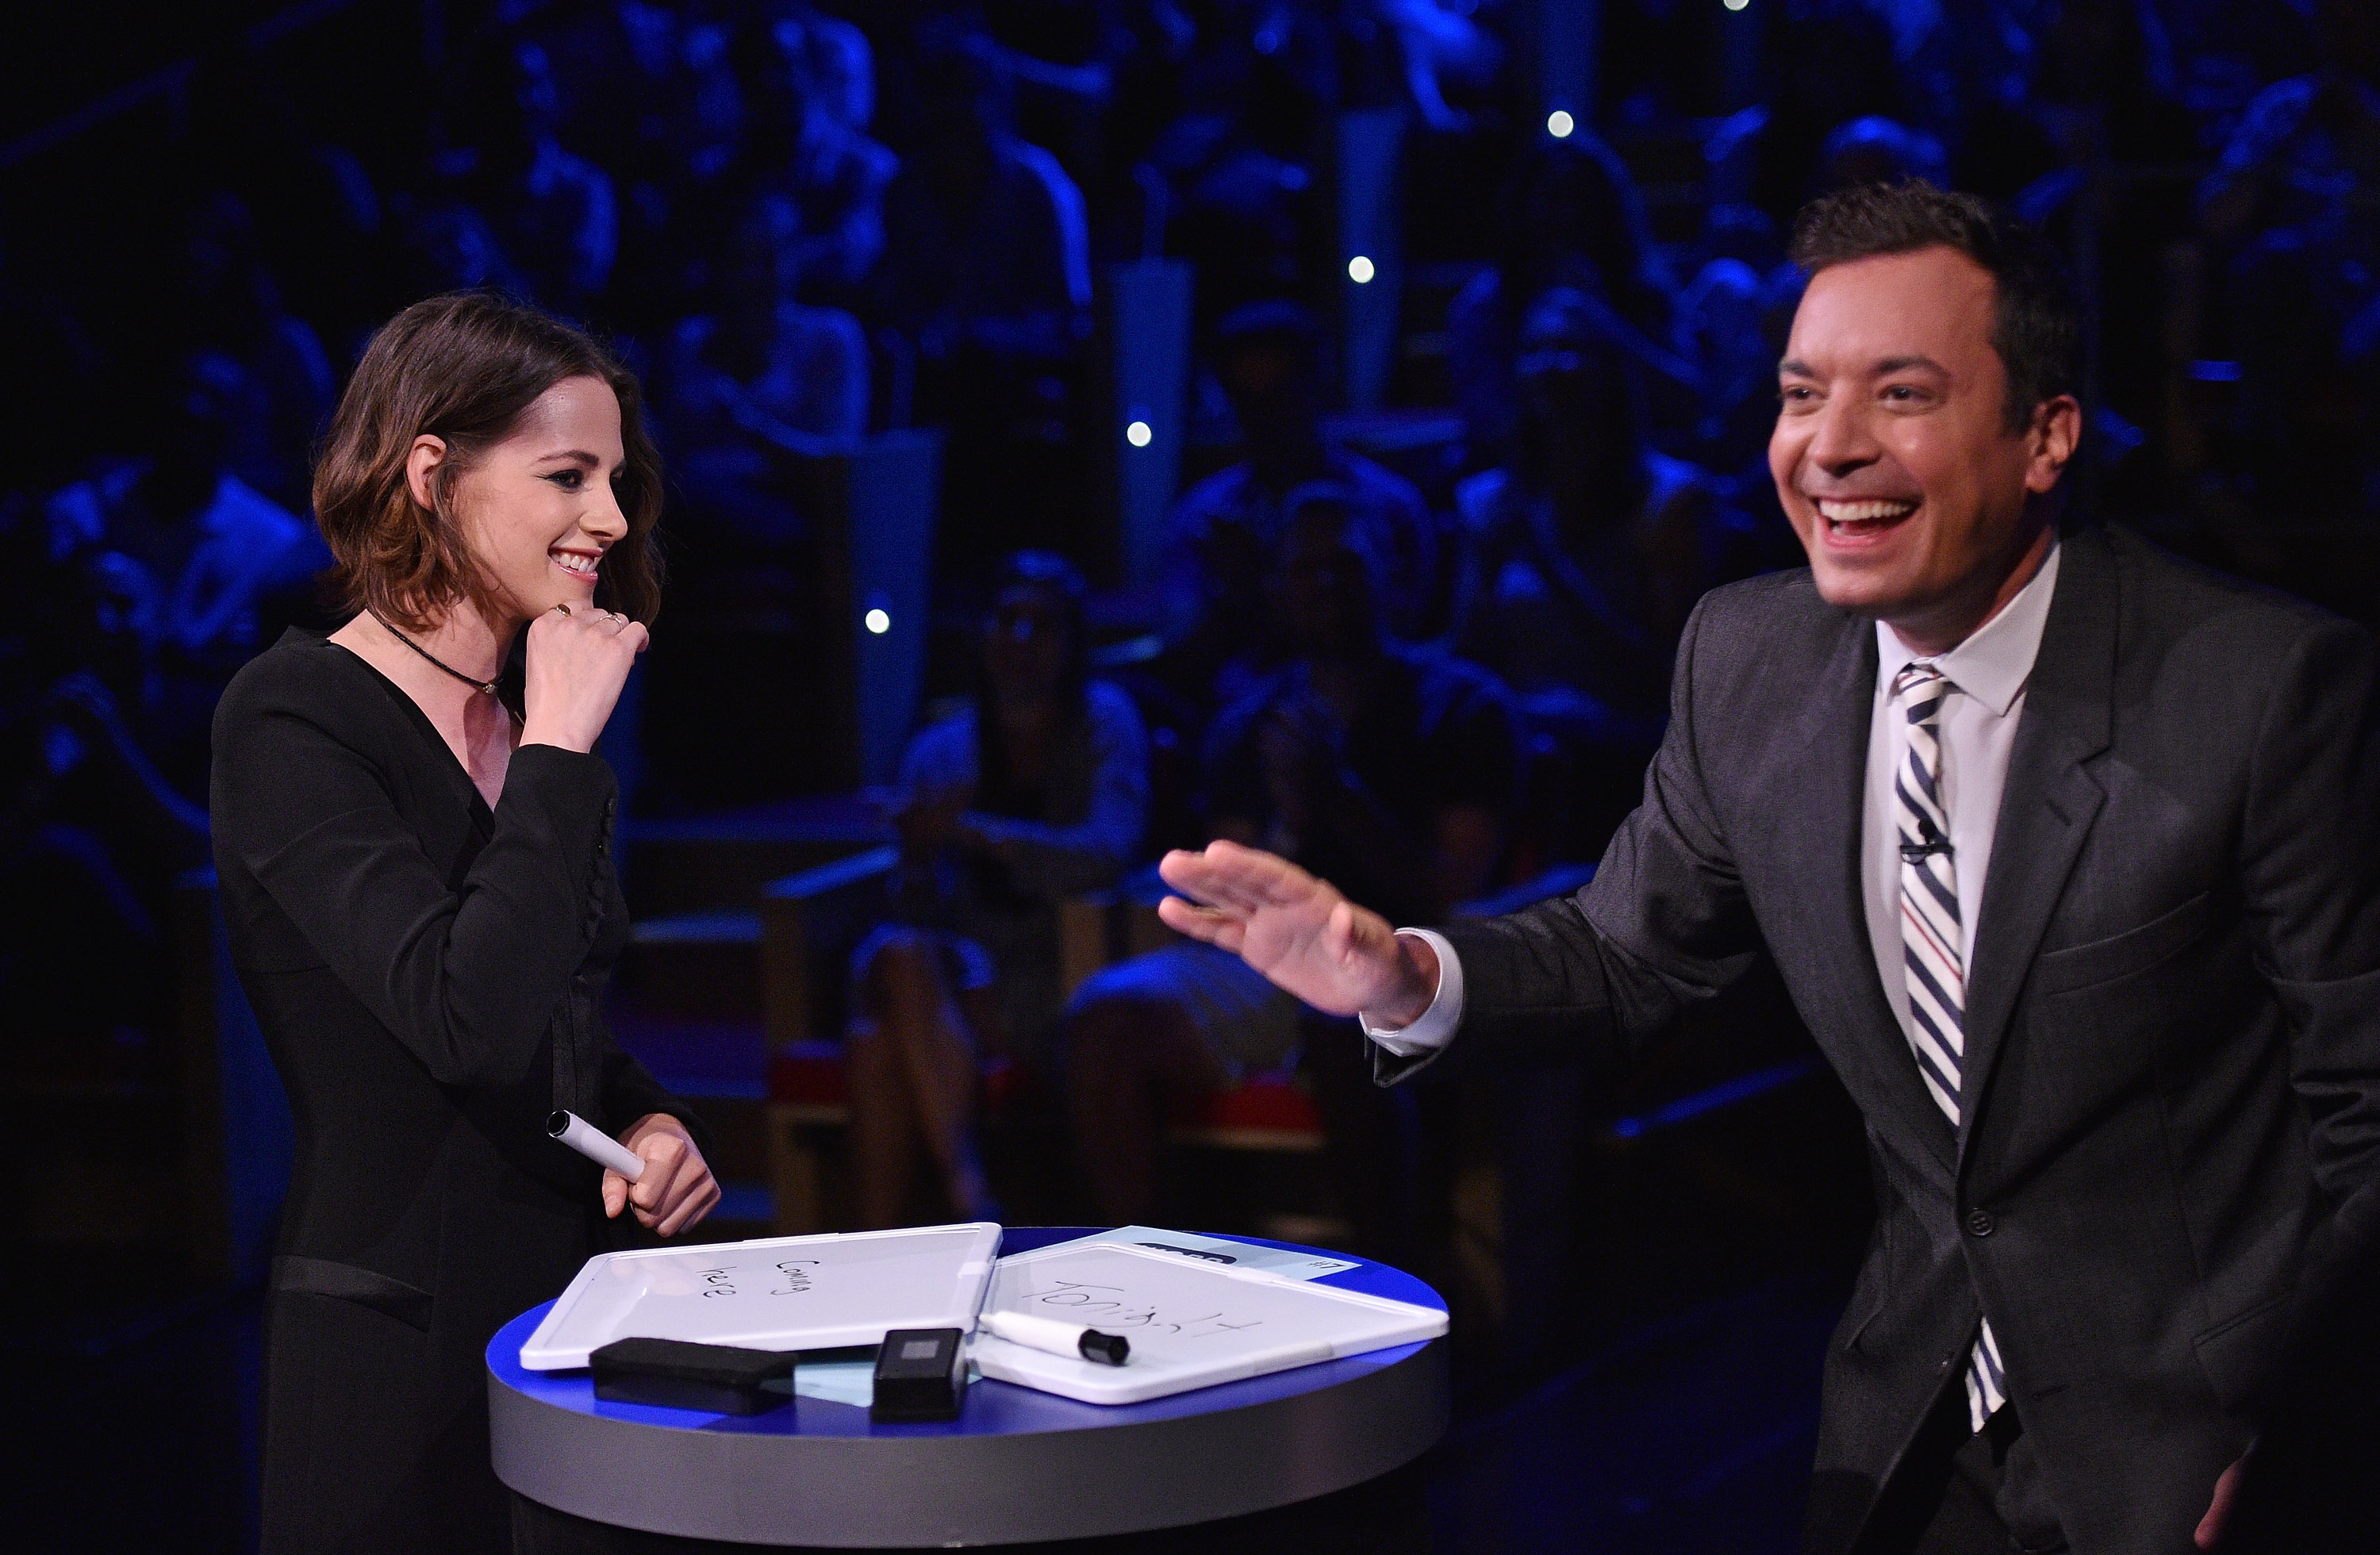 Actress Kristen Stewart and Jimmy Fallon play a game on  The Tonight Show Starring Jimmy Fallon   in New York City in August 11, 2015